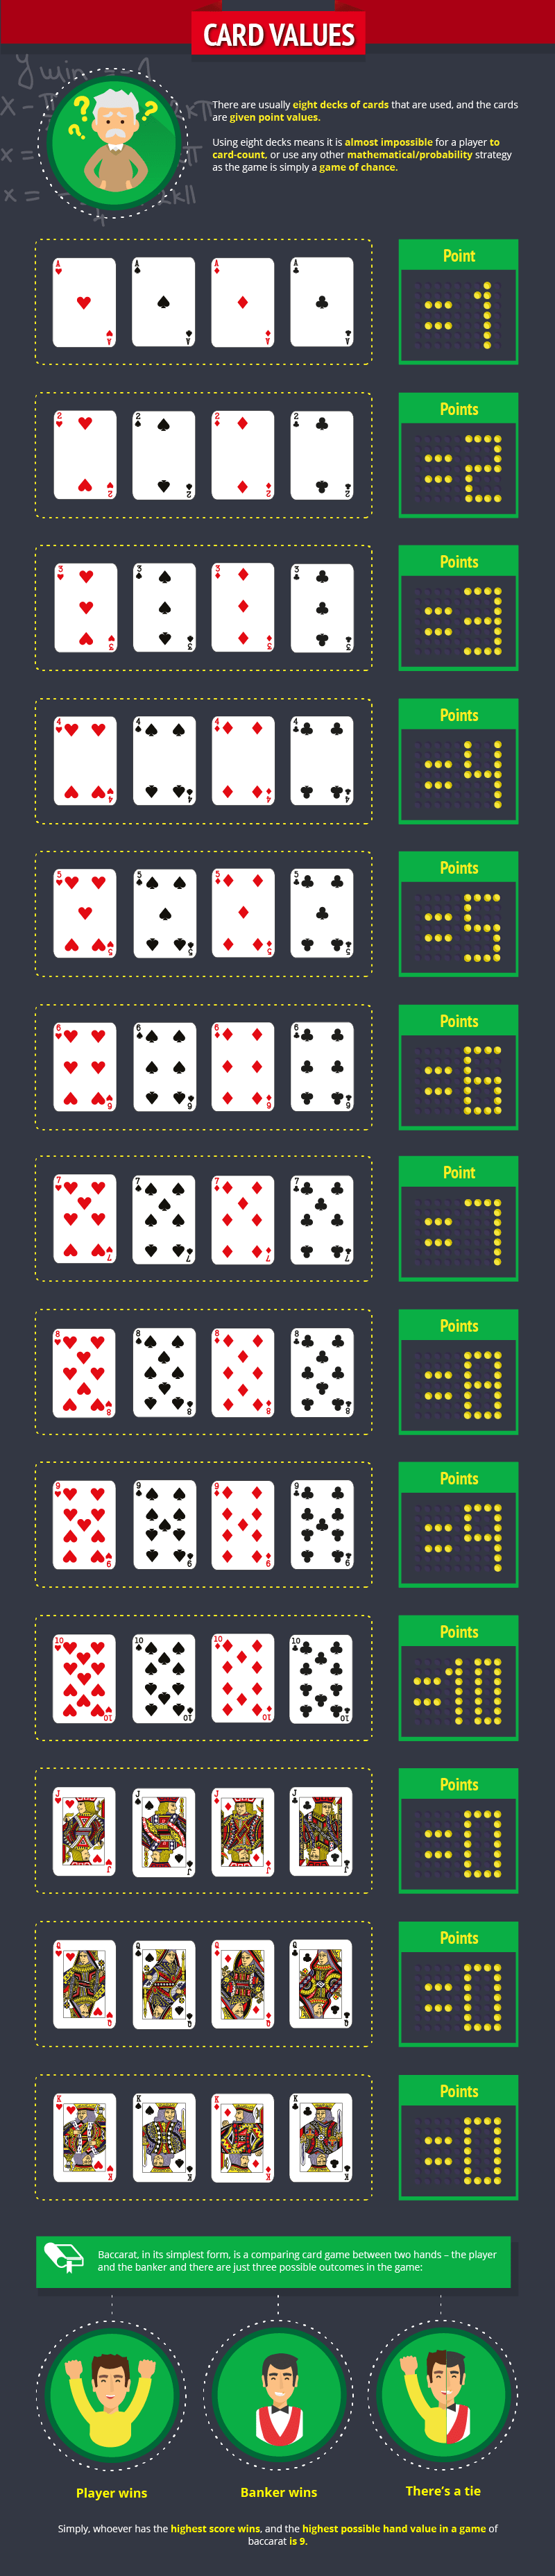 005-Beginners Guide to Baccarat 1-6_Card Values-min